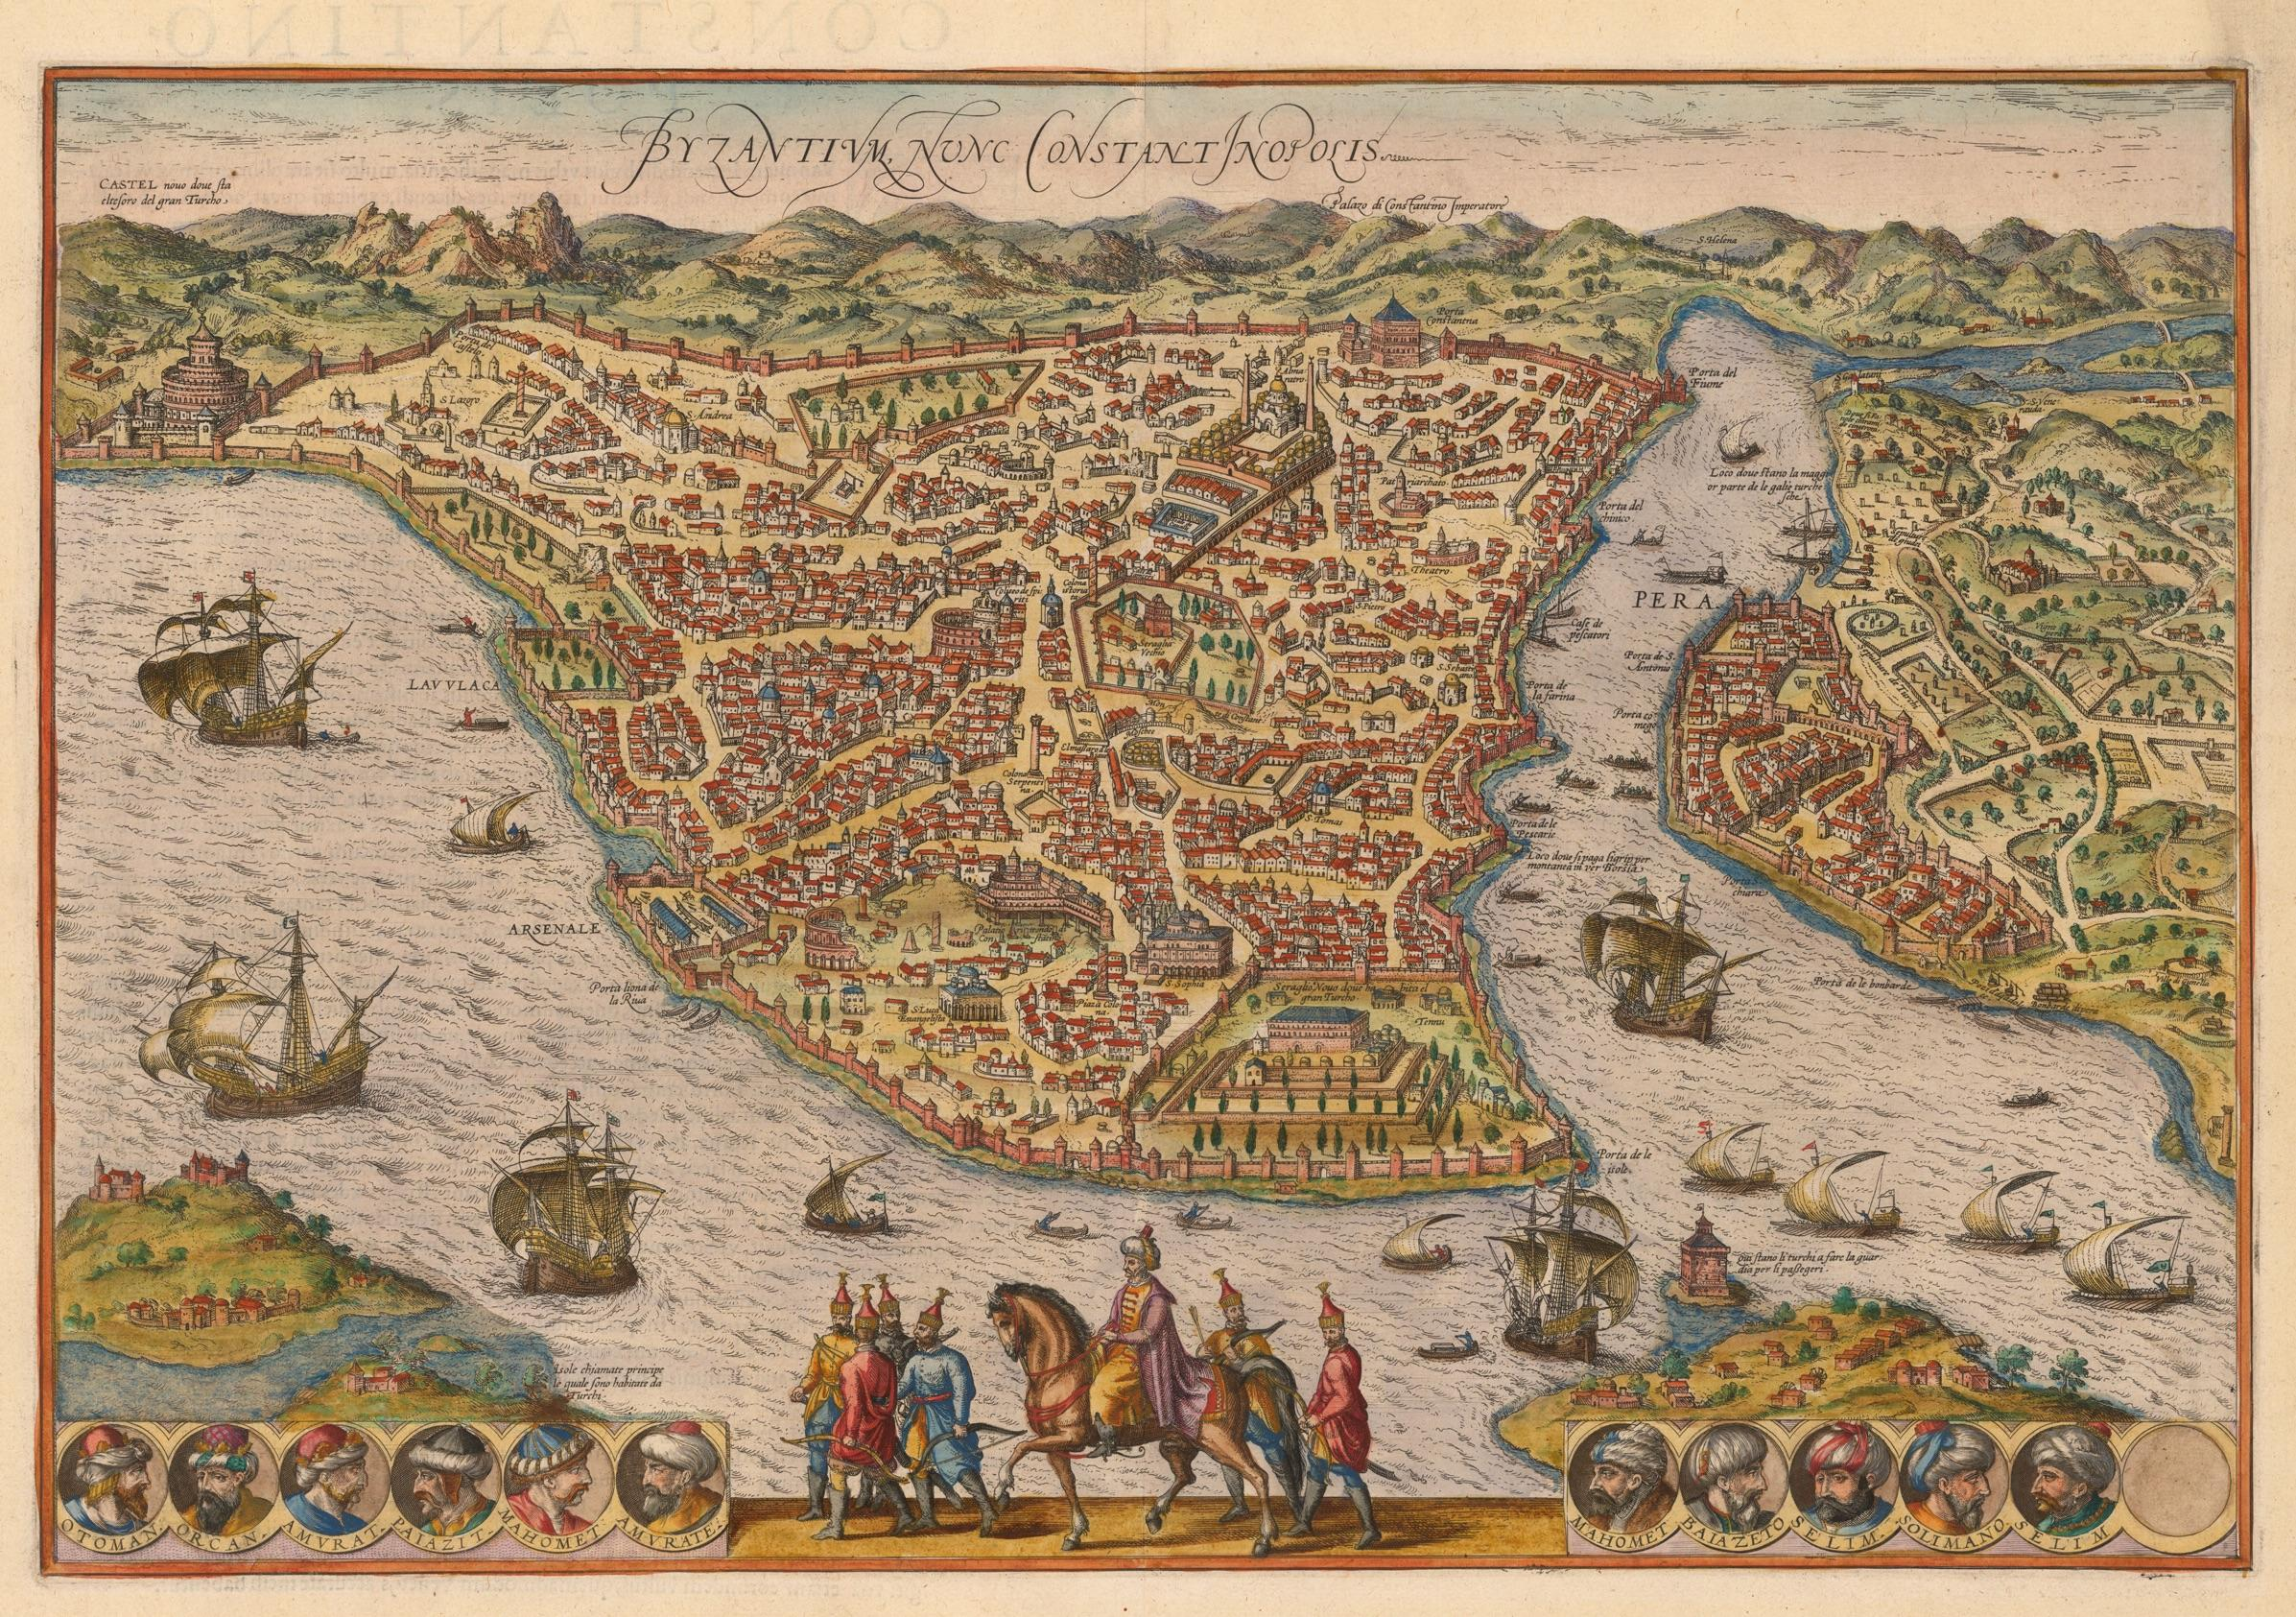 Istanbul, the Ottoman Capital with the Genovese part named Pera, 16th Century